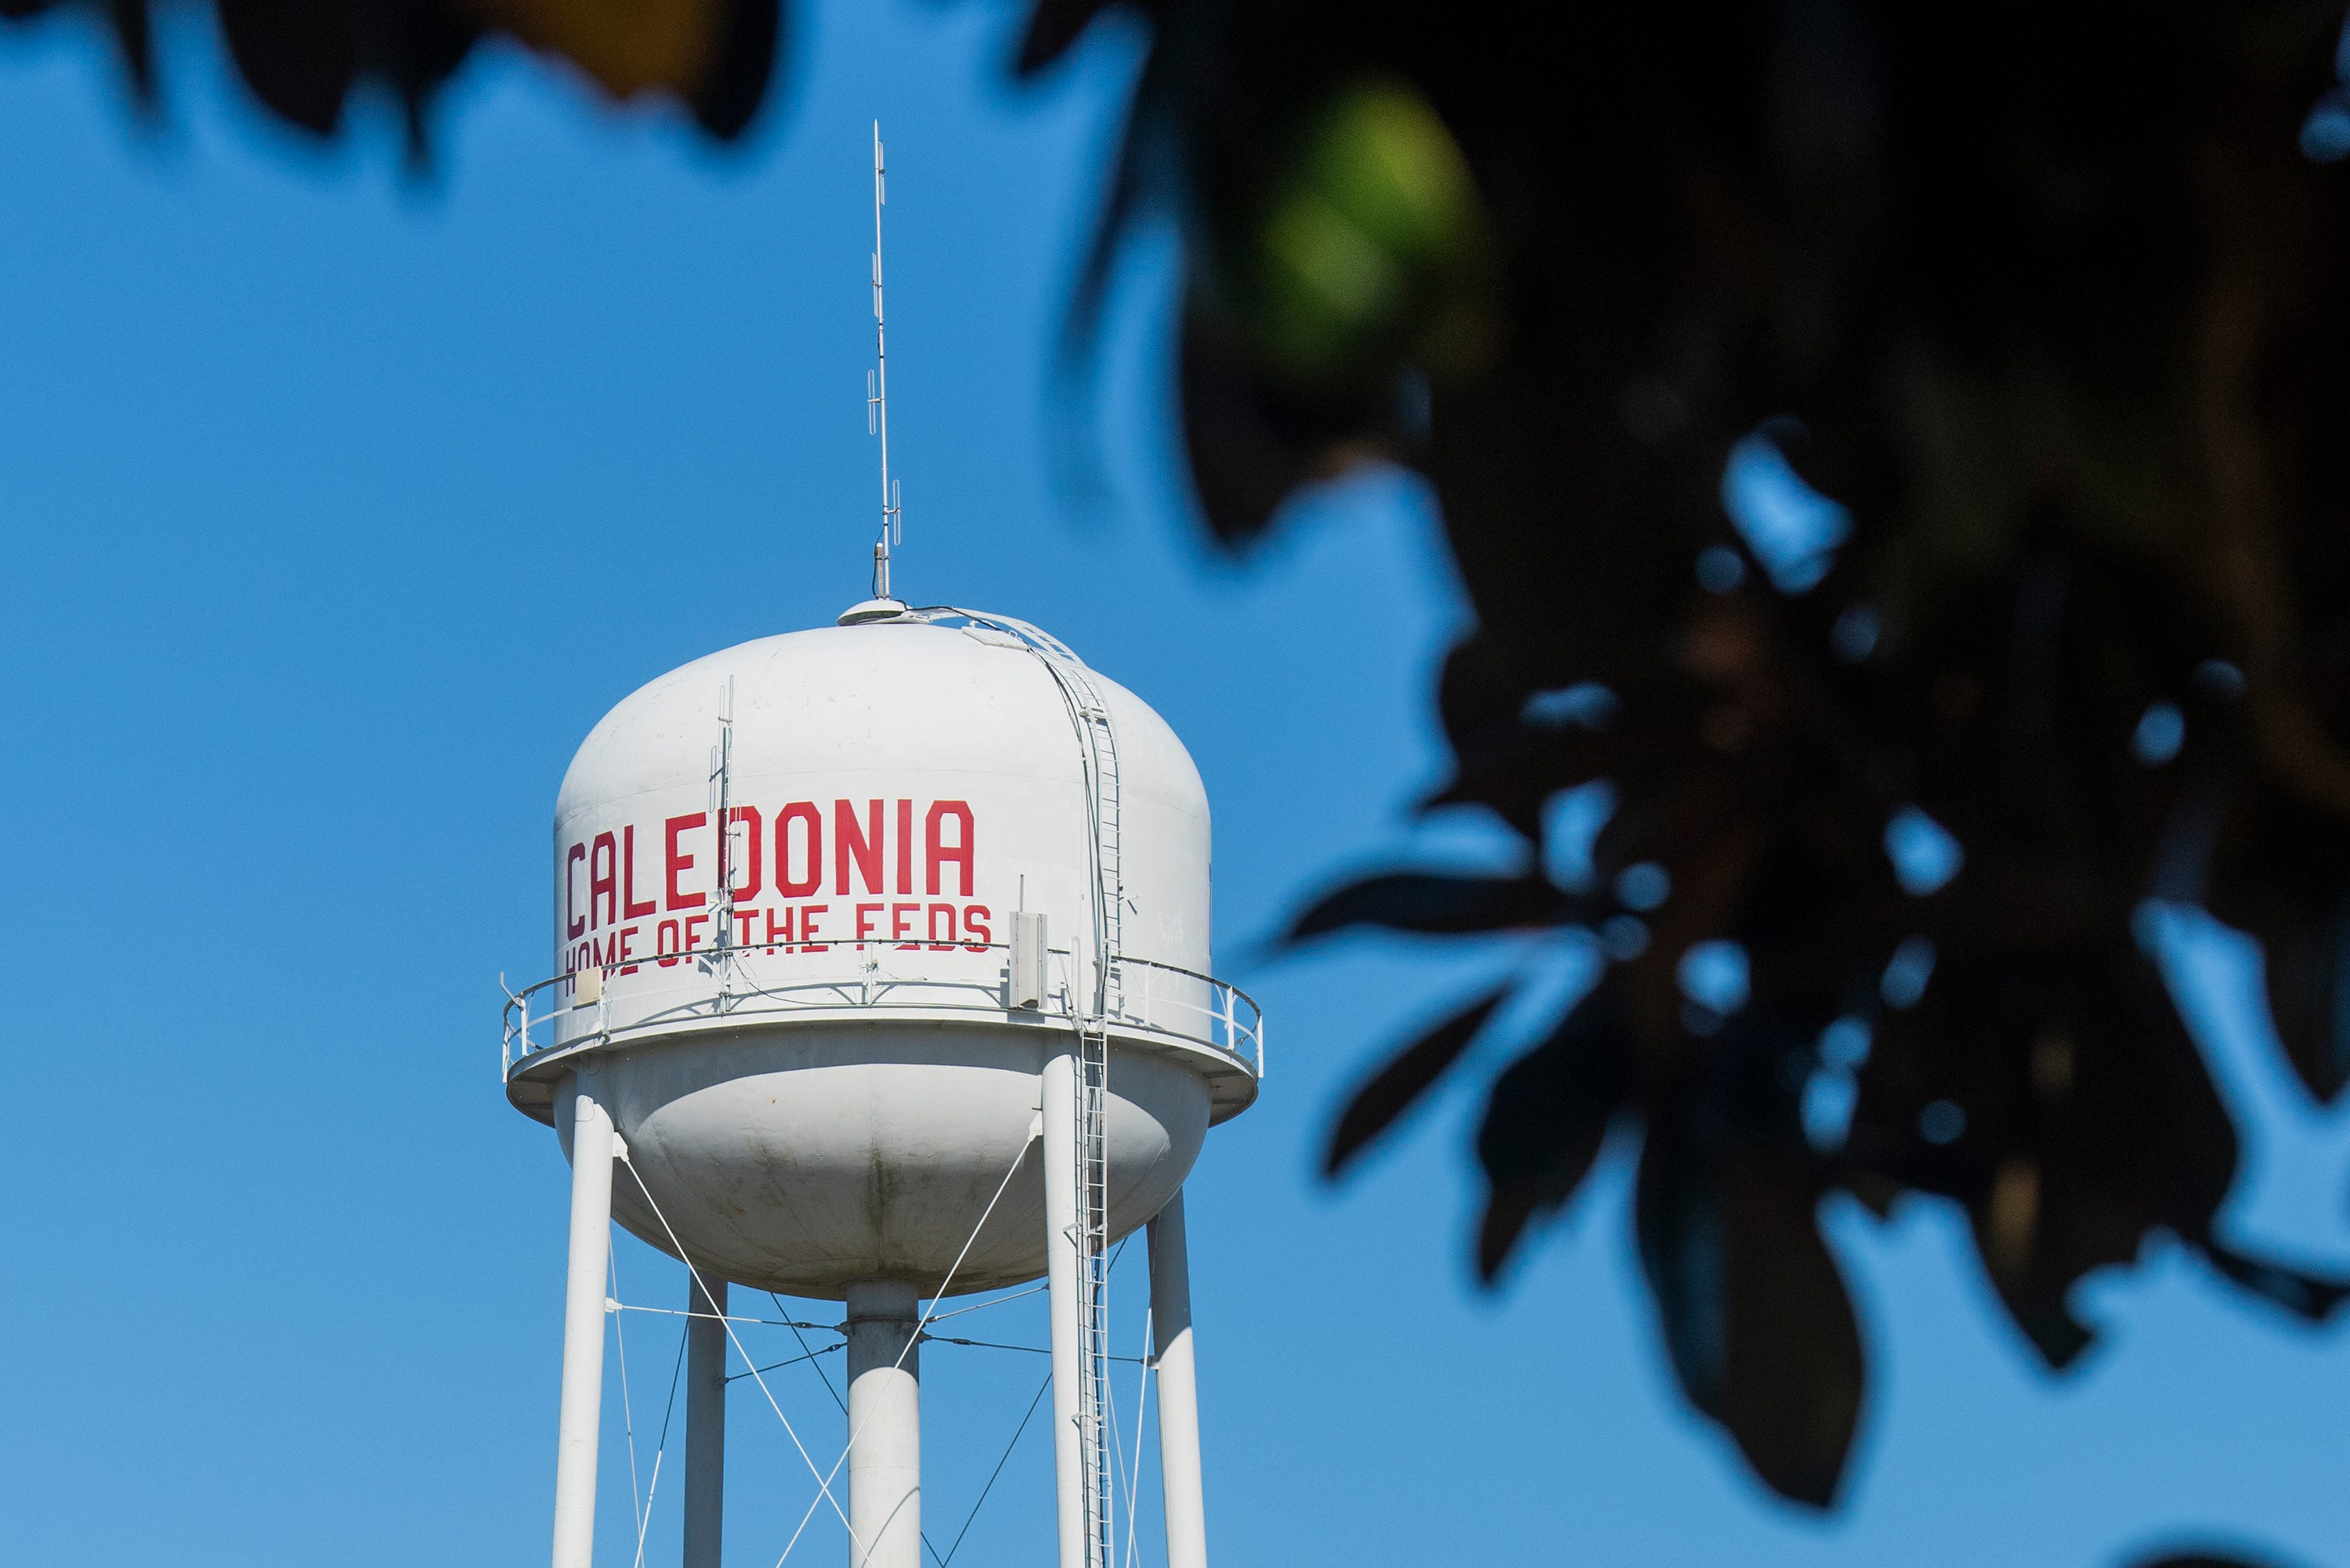 Framed by the leaves of a magnolia tree Monday, Nov. 16, 2020, the Caledonia, Miss., water tower is now a sign of the past. As of mid-November, Caledonia High has changed its nickname from Confederates to the Cavaliers.